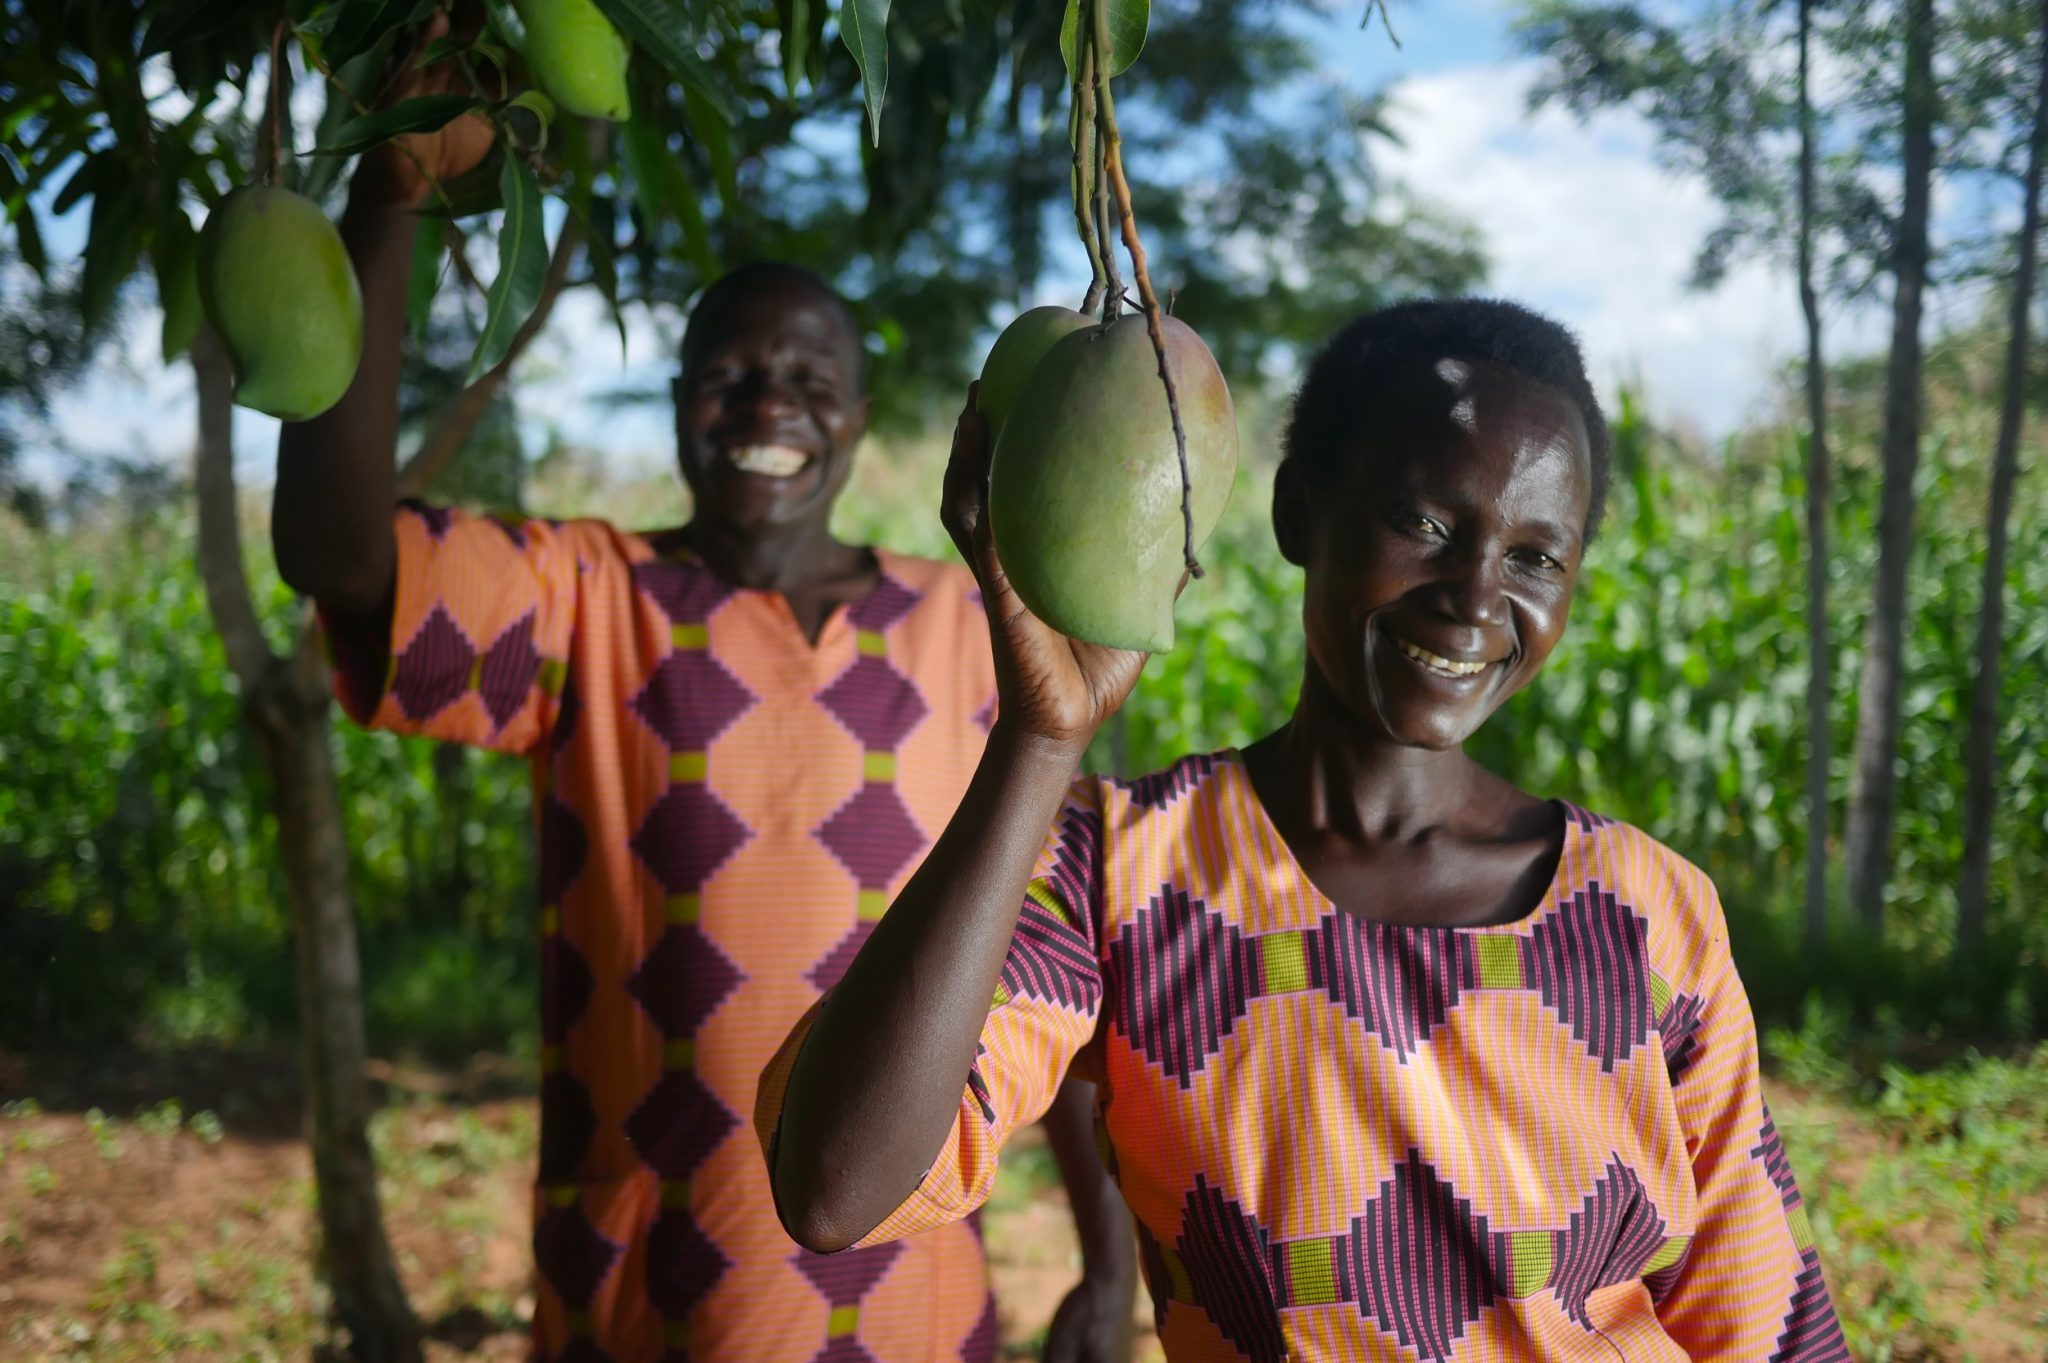 Francis and Josephine smiling holding mangoes from their tree 2048x1363